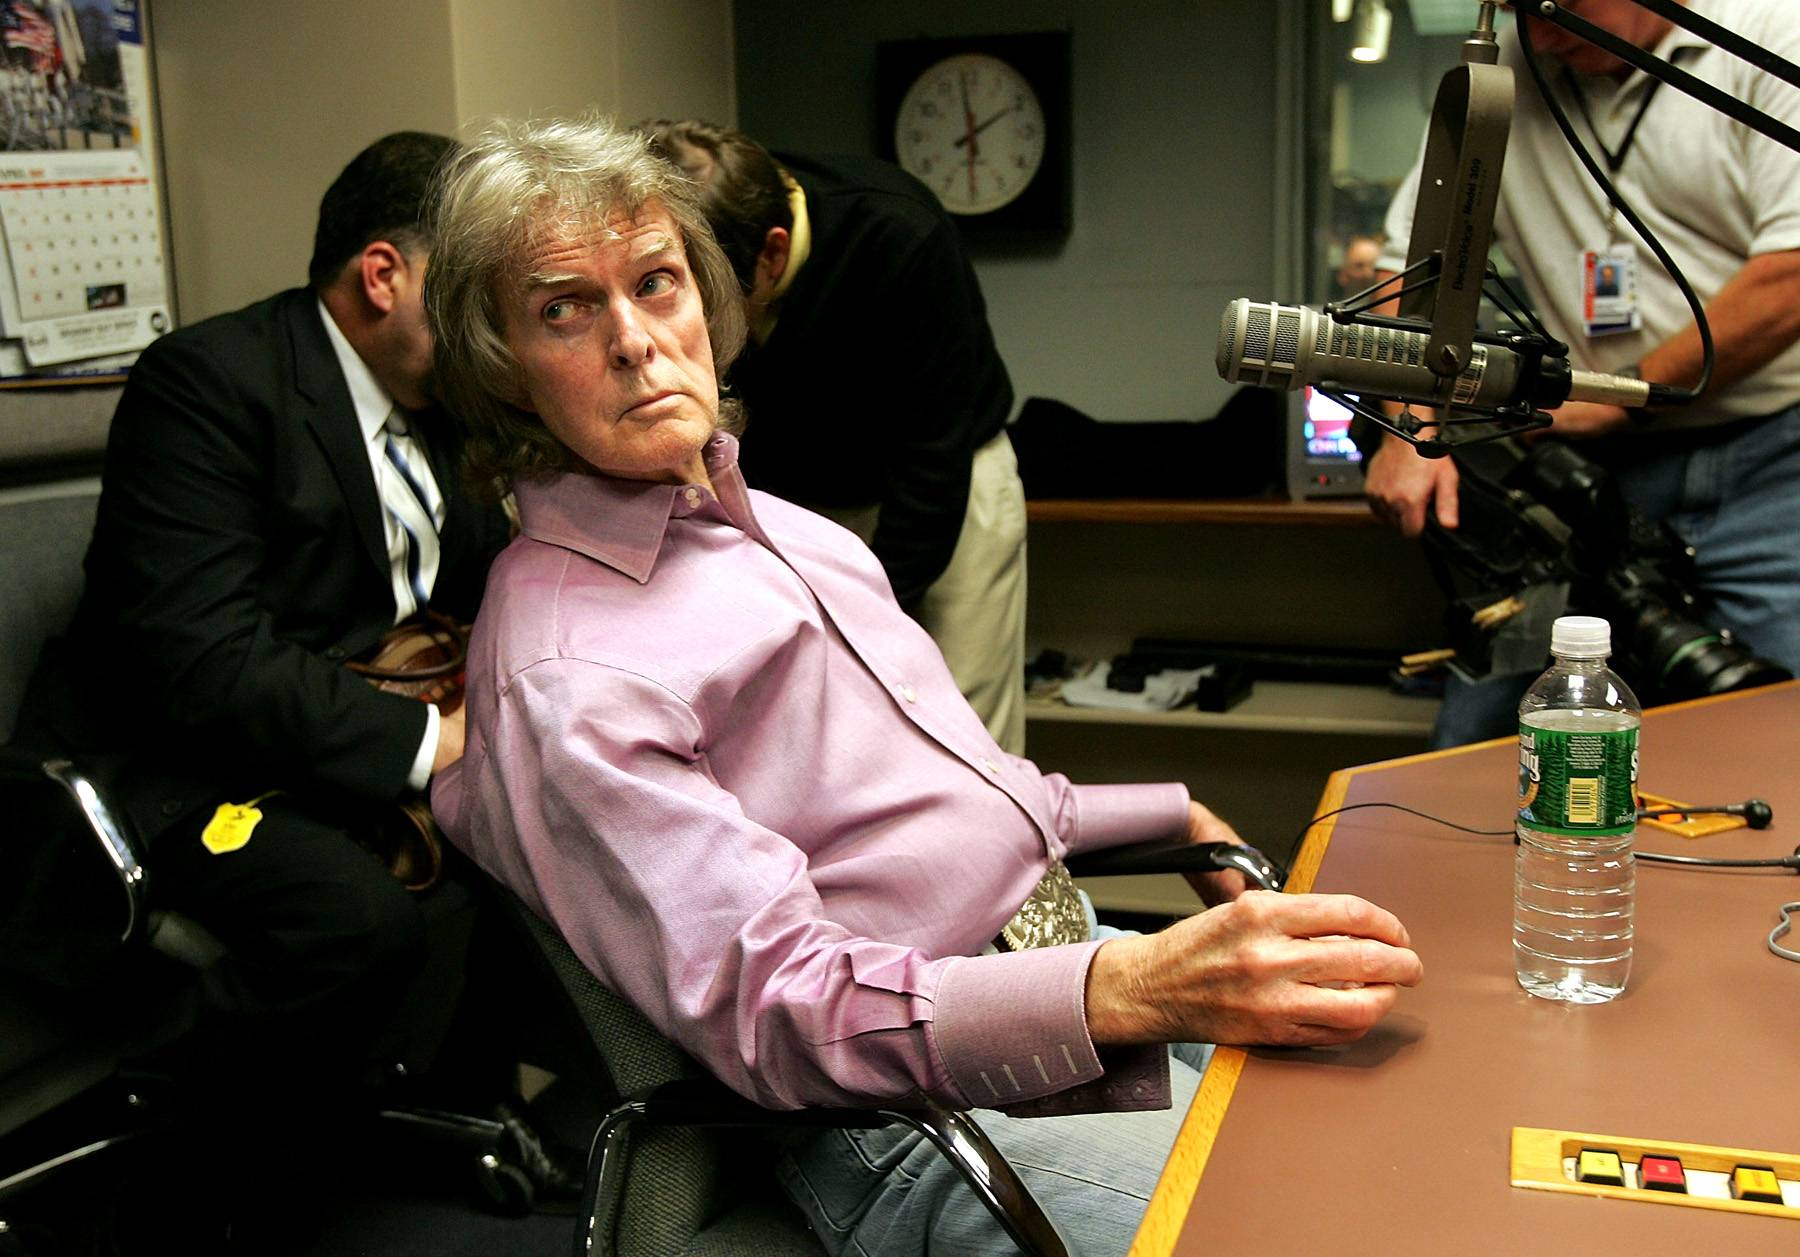 /content/dam/betcom/images/2013/03/National-03-16-03-31/032713-national-history-radio-personality-don-imus-racist-statements.jpg